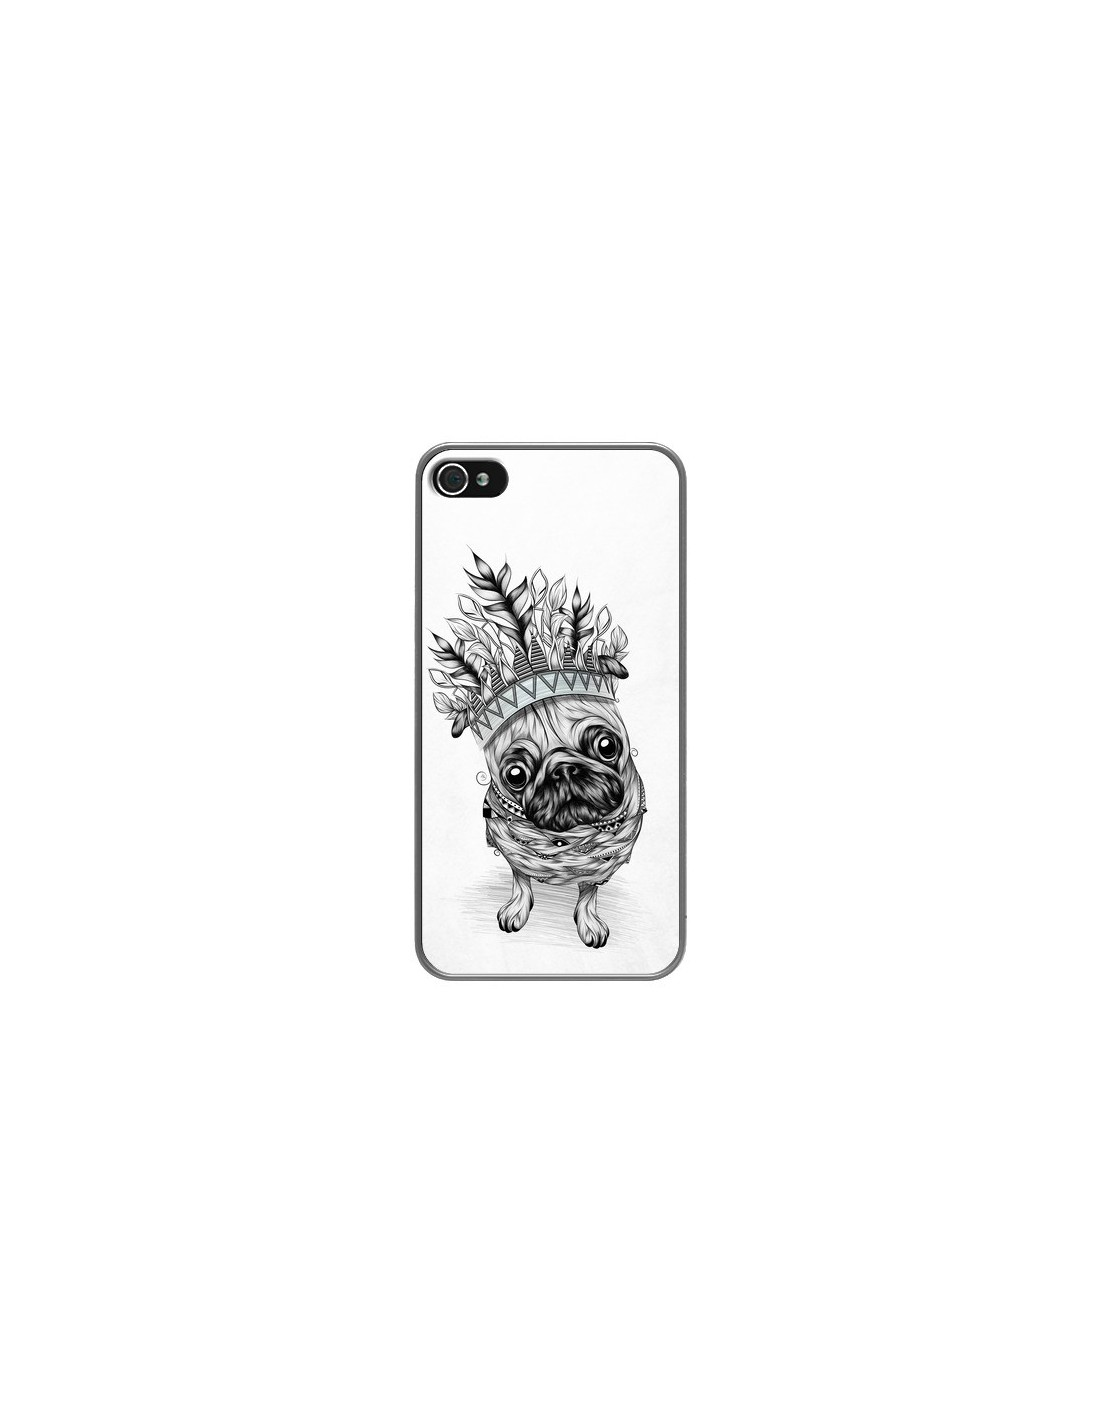 Coque Indian Dog Chien Indien Chef Couronne pour iPhone 4